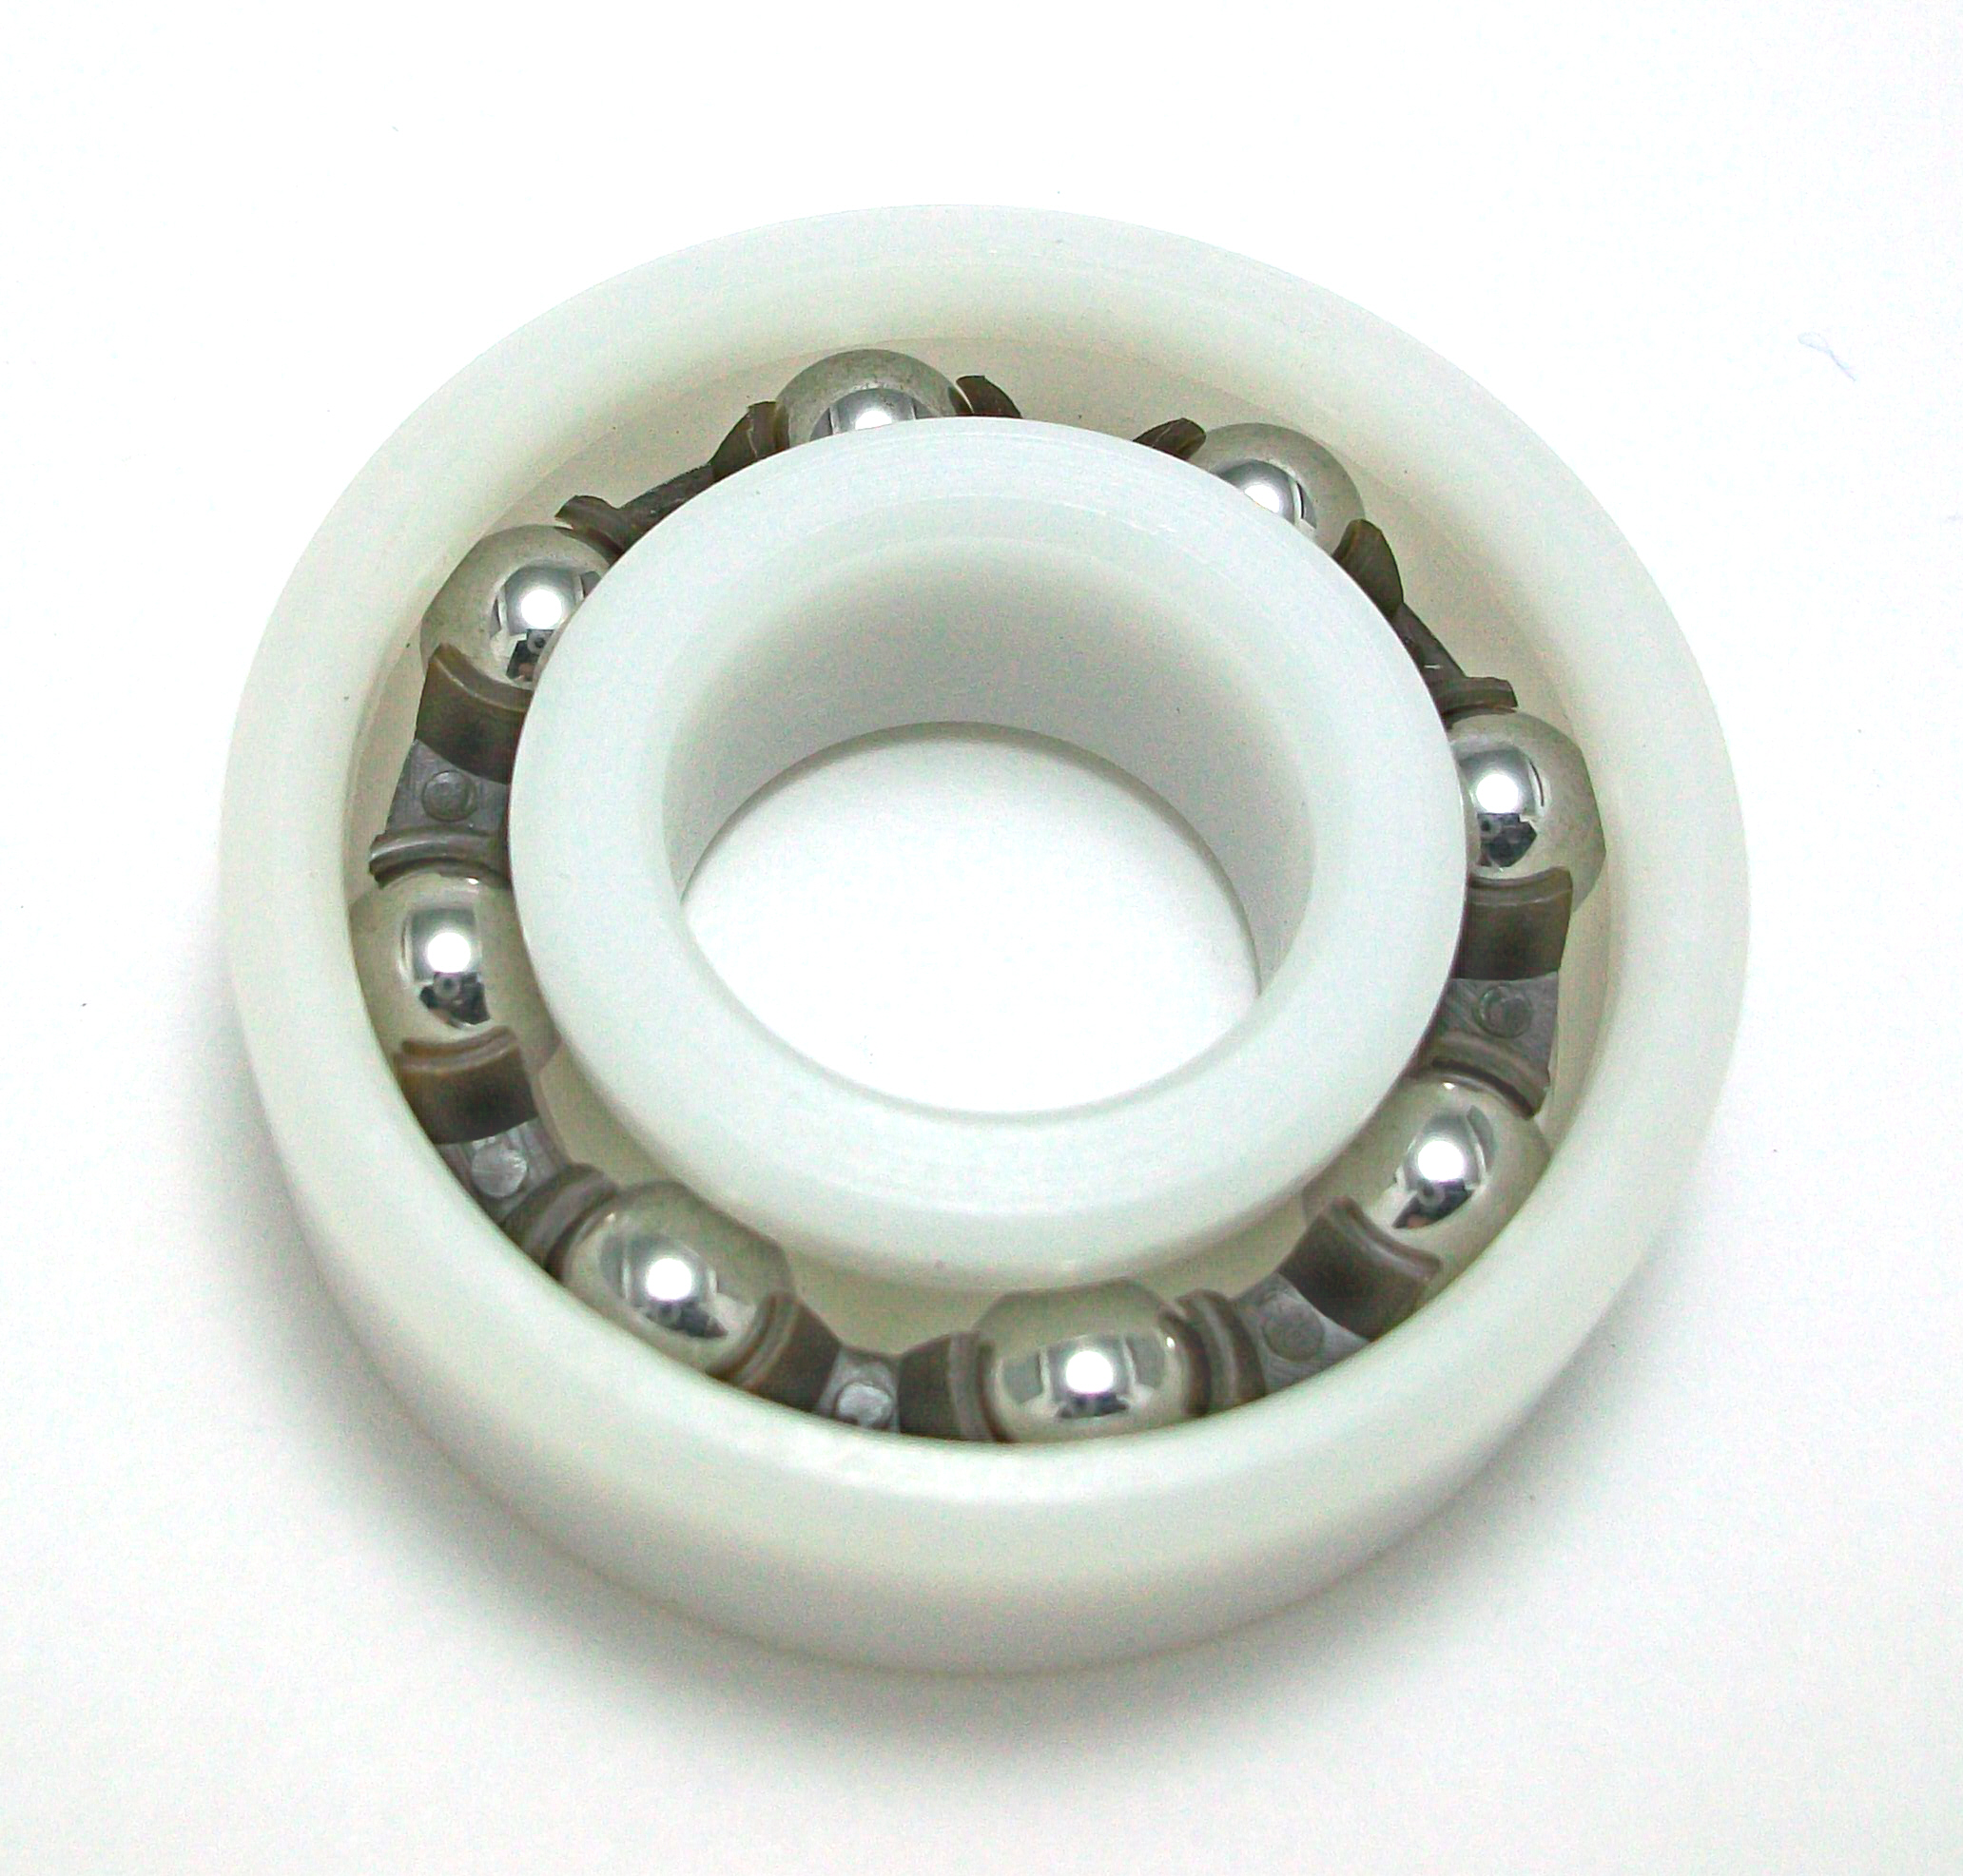 Plastic ball bearings are normally stocked with acetal resin (POM) rings and nylon (PA66) cages with 316 stainless steel